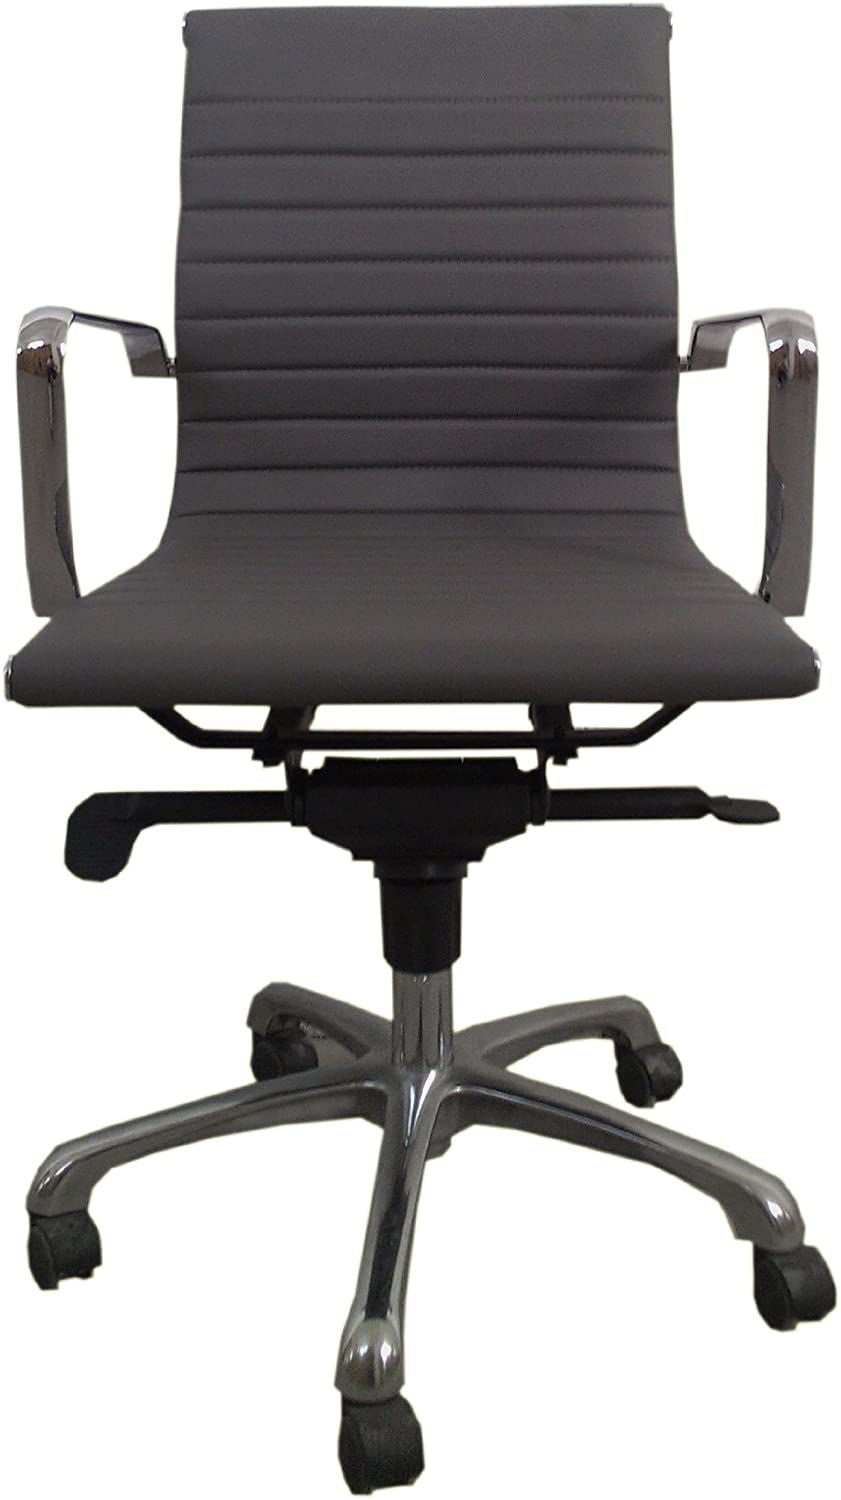 Moe's Home Collection Bern Low Back Office Chair, Grey